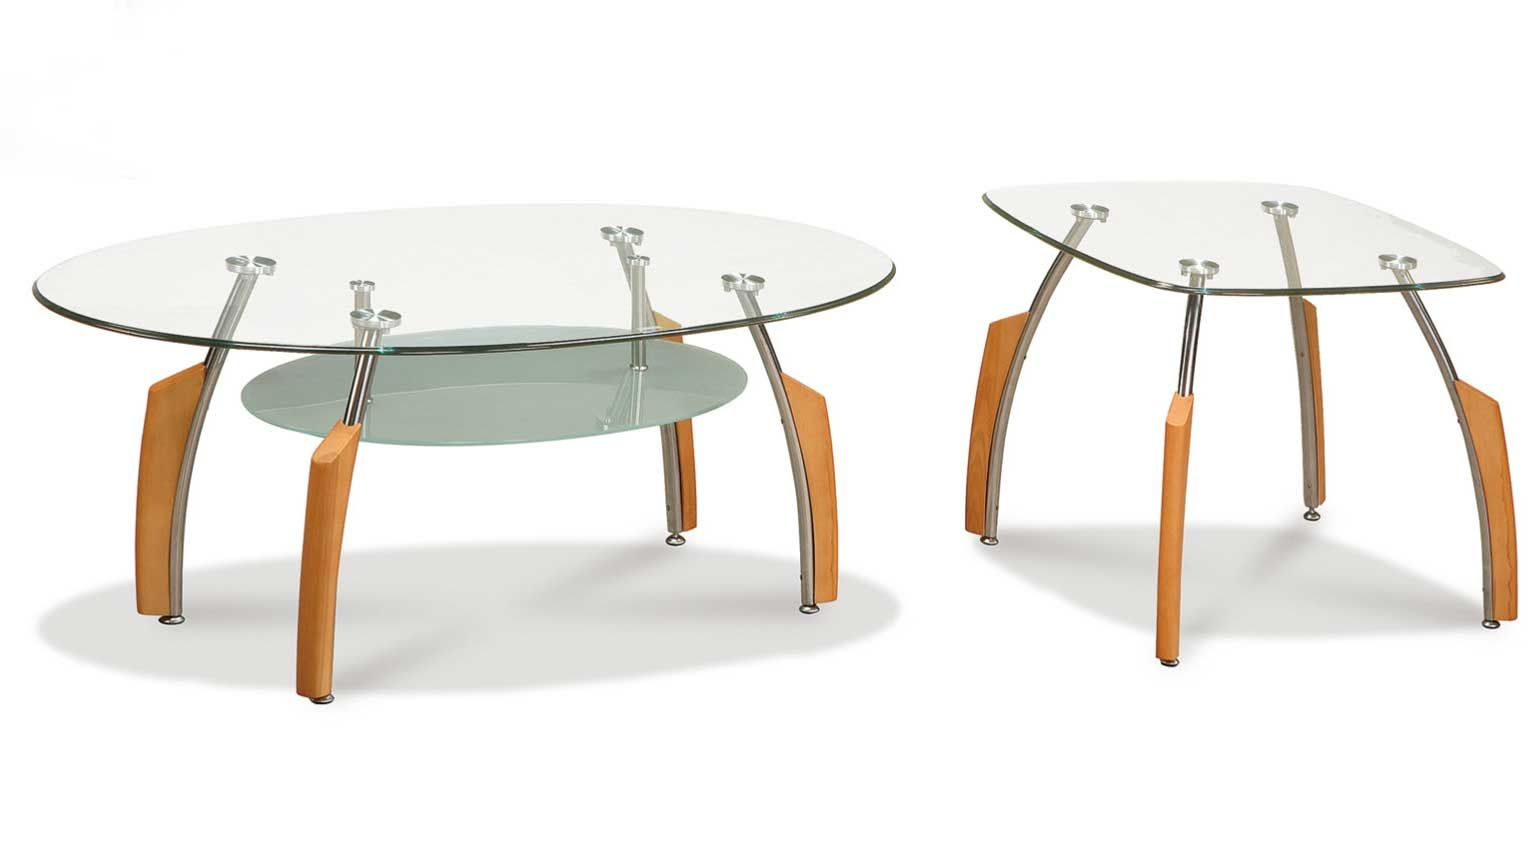 T138 Contemporary Glass Cocktail Table U0026 End Table  Shop At Puritan  Furniture  CT.